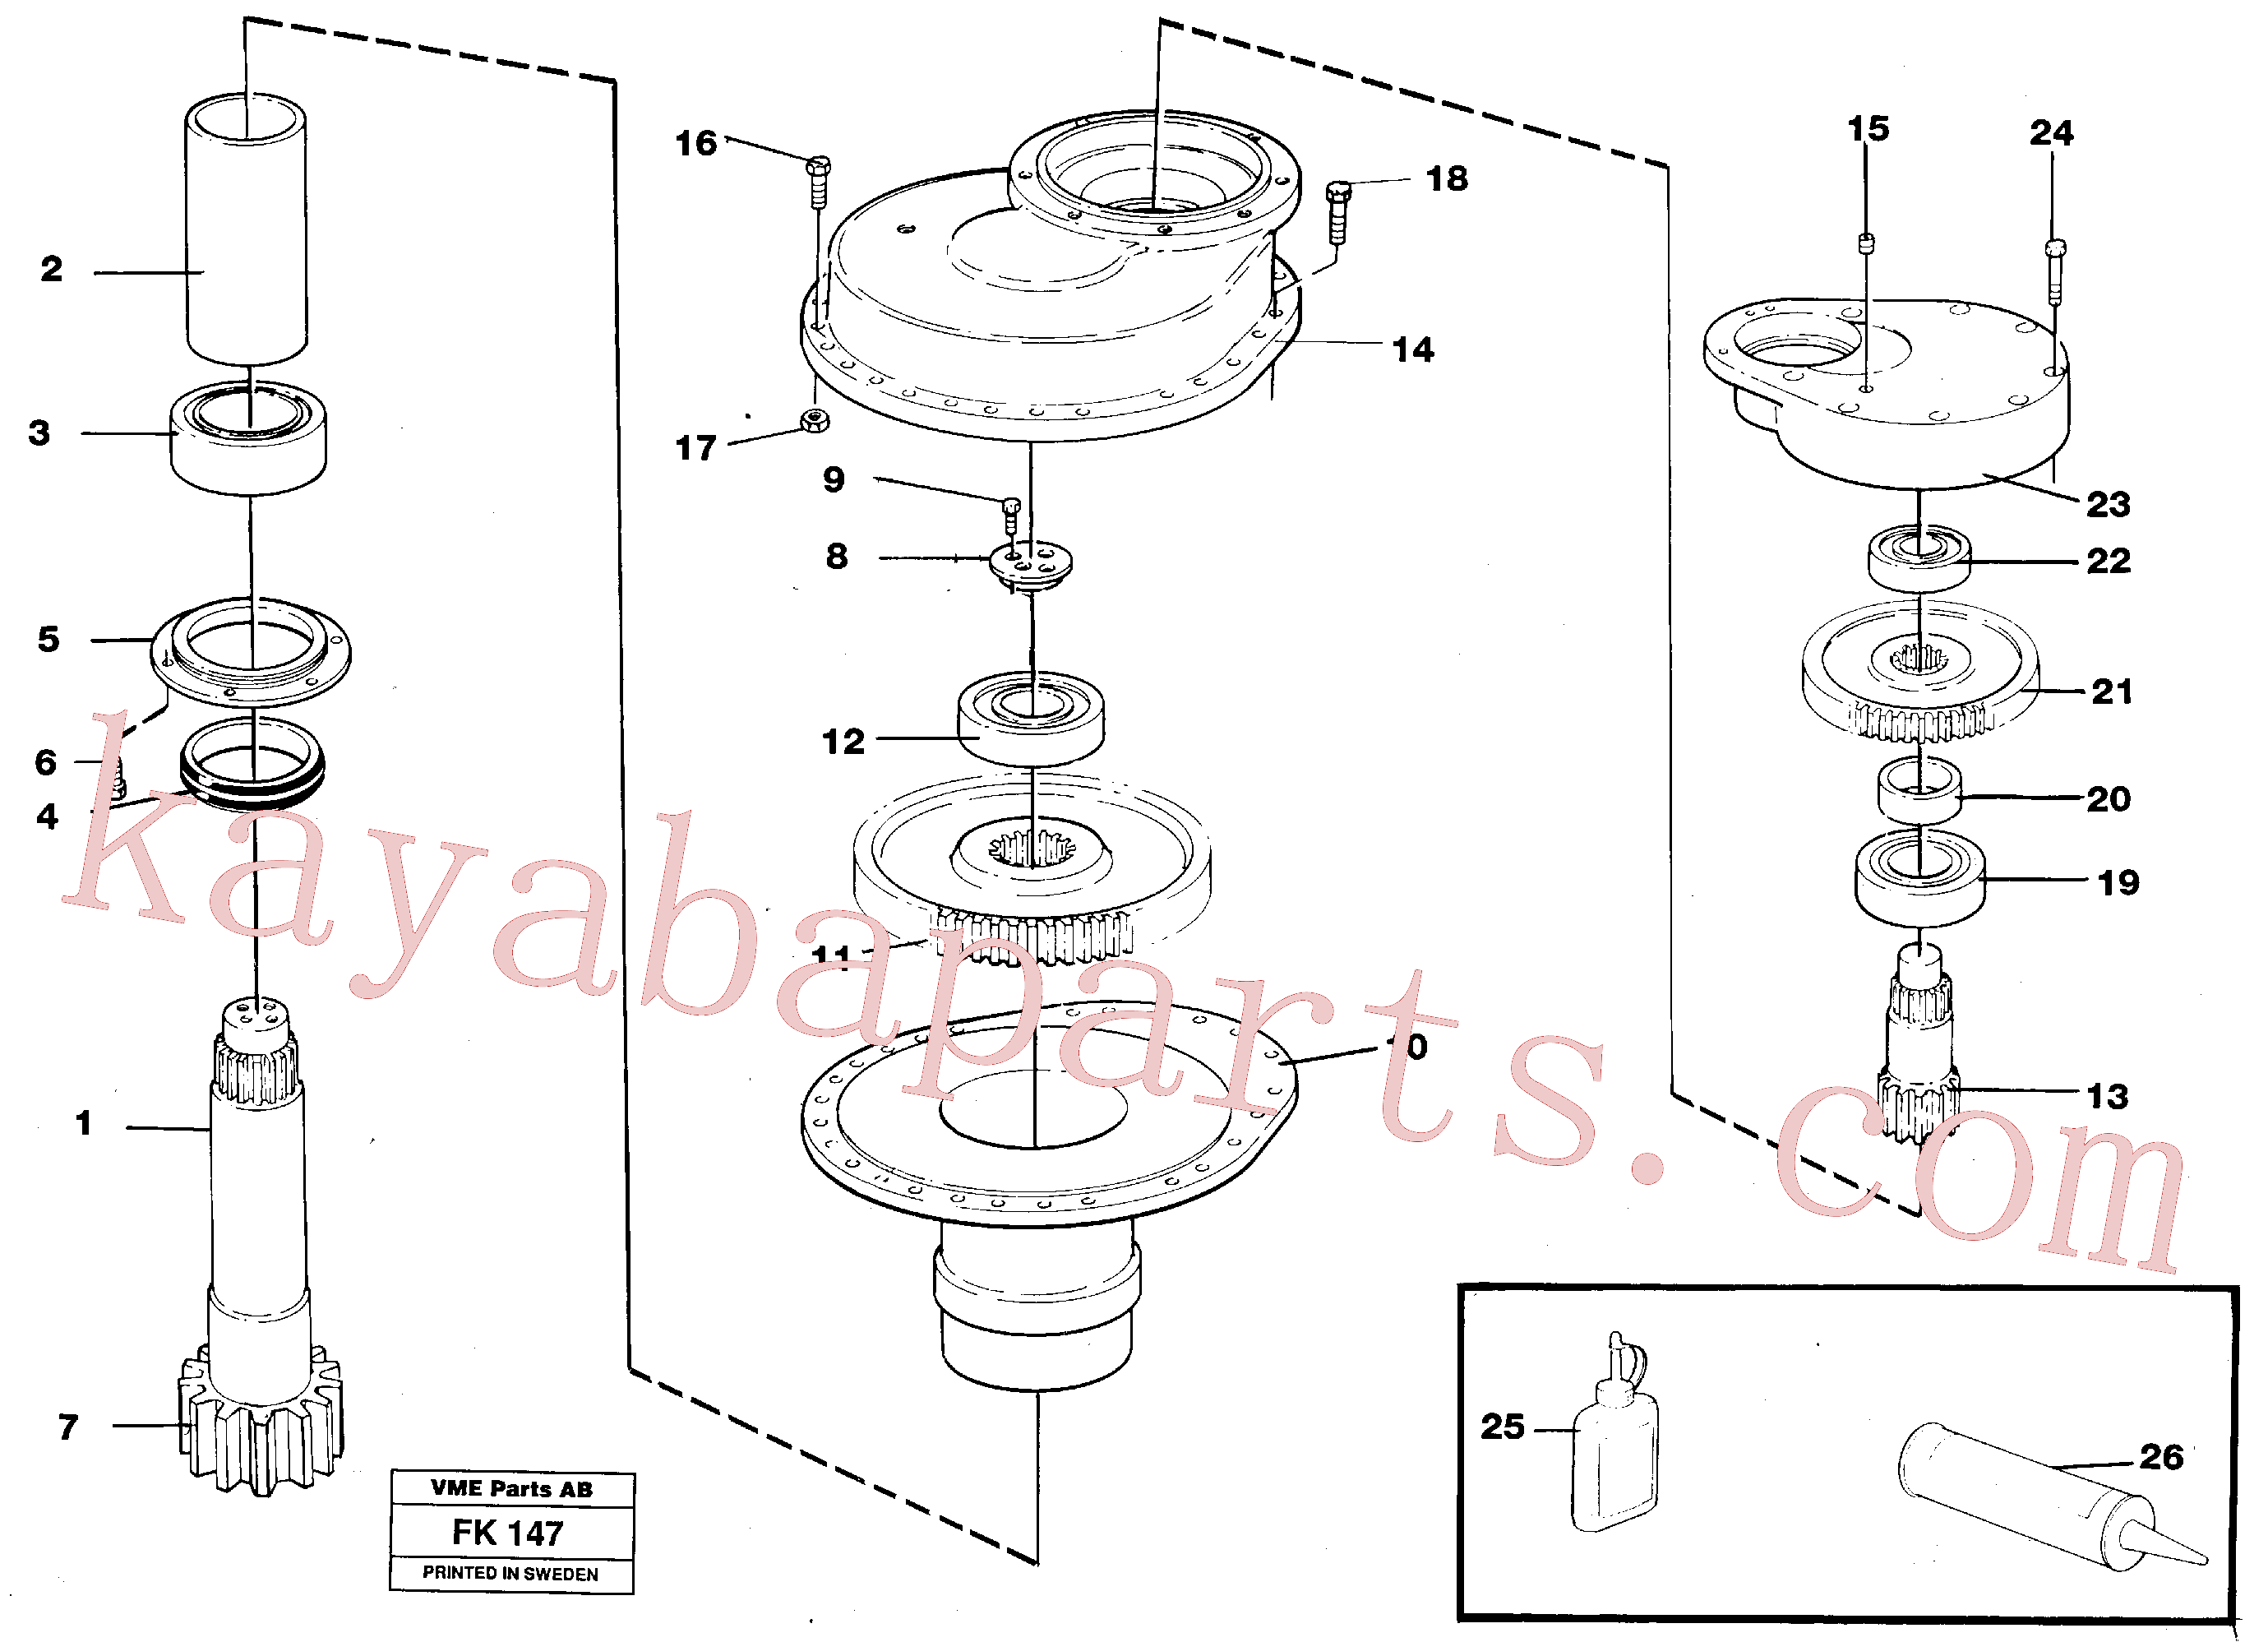 VOE955785 for Volvo Swing gearbox(FK147 assembly)